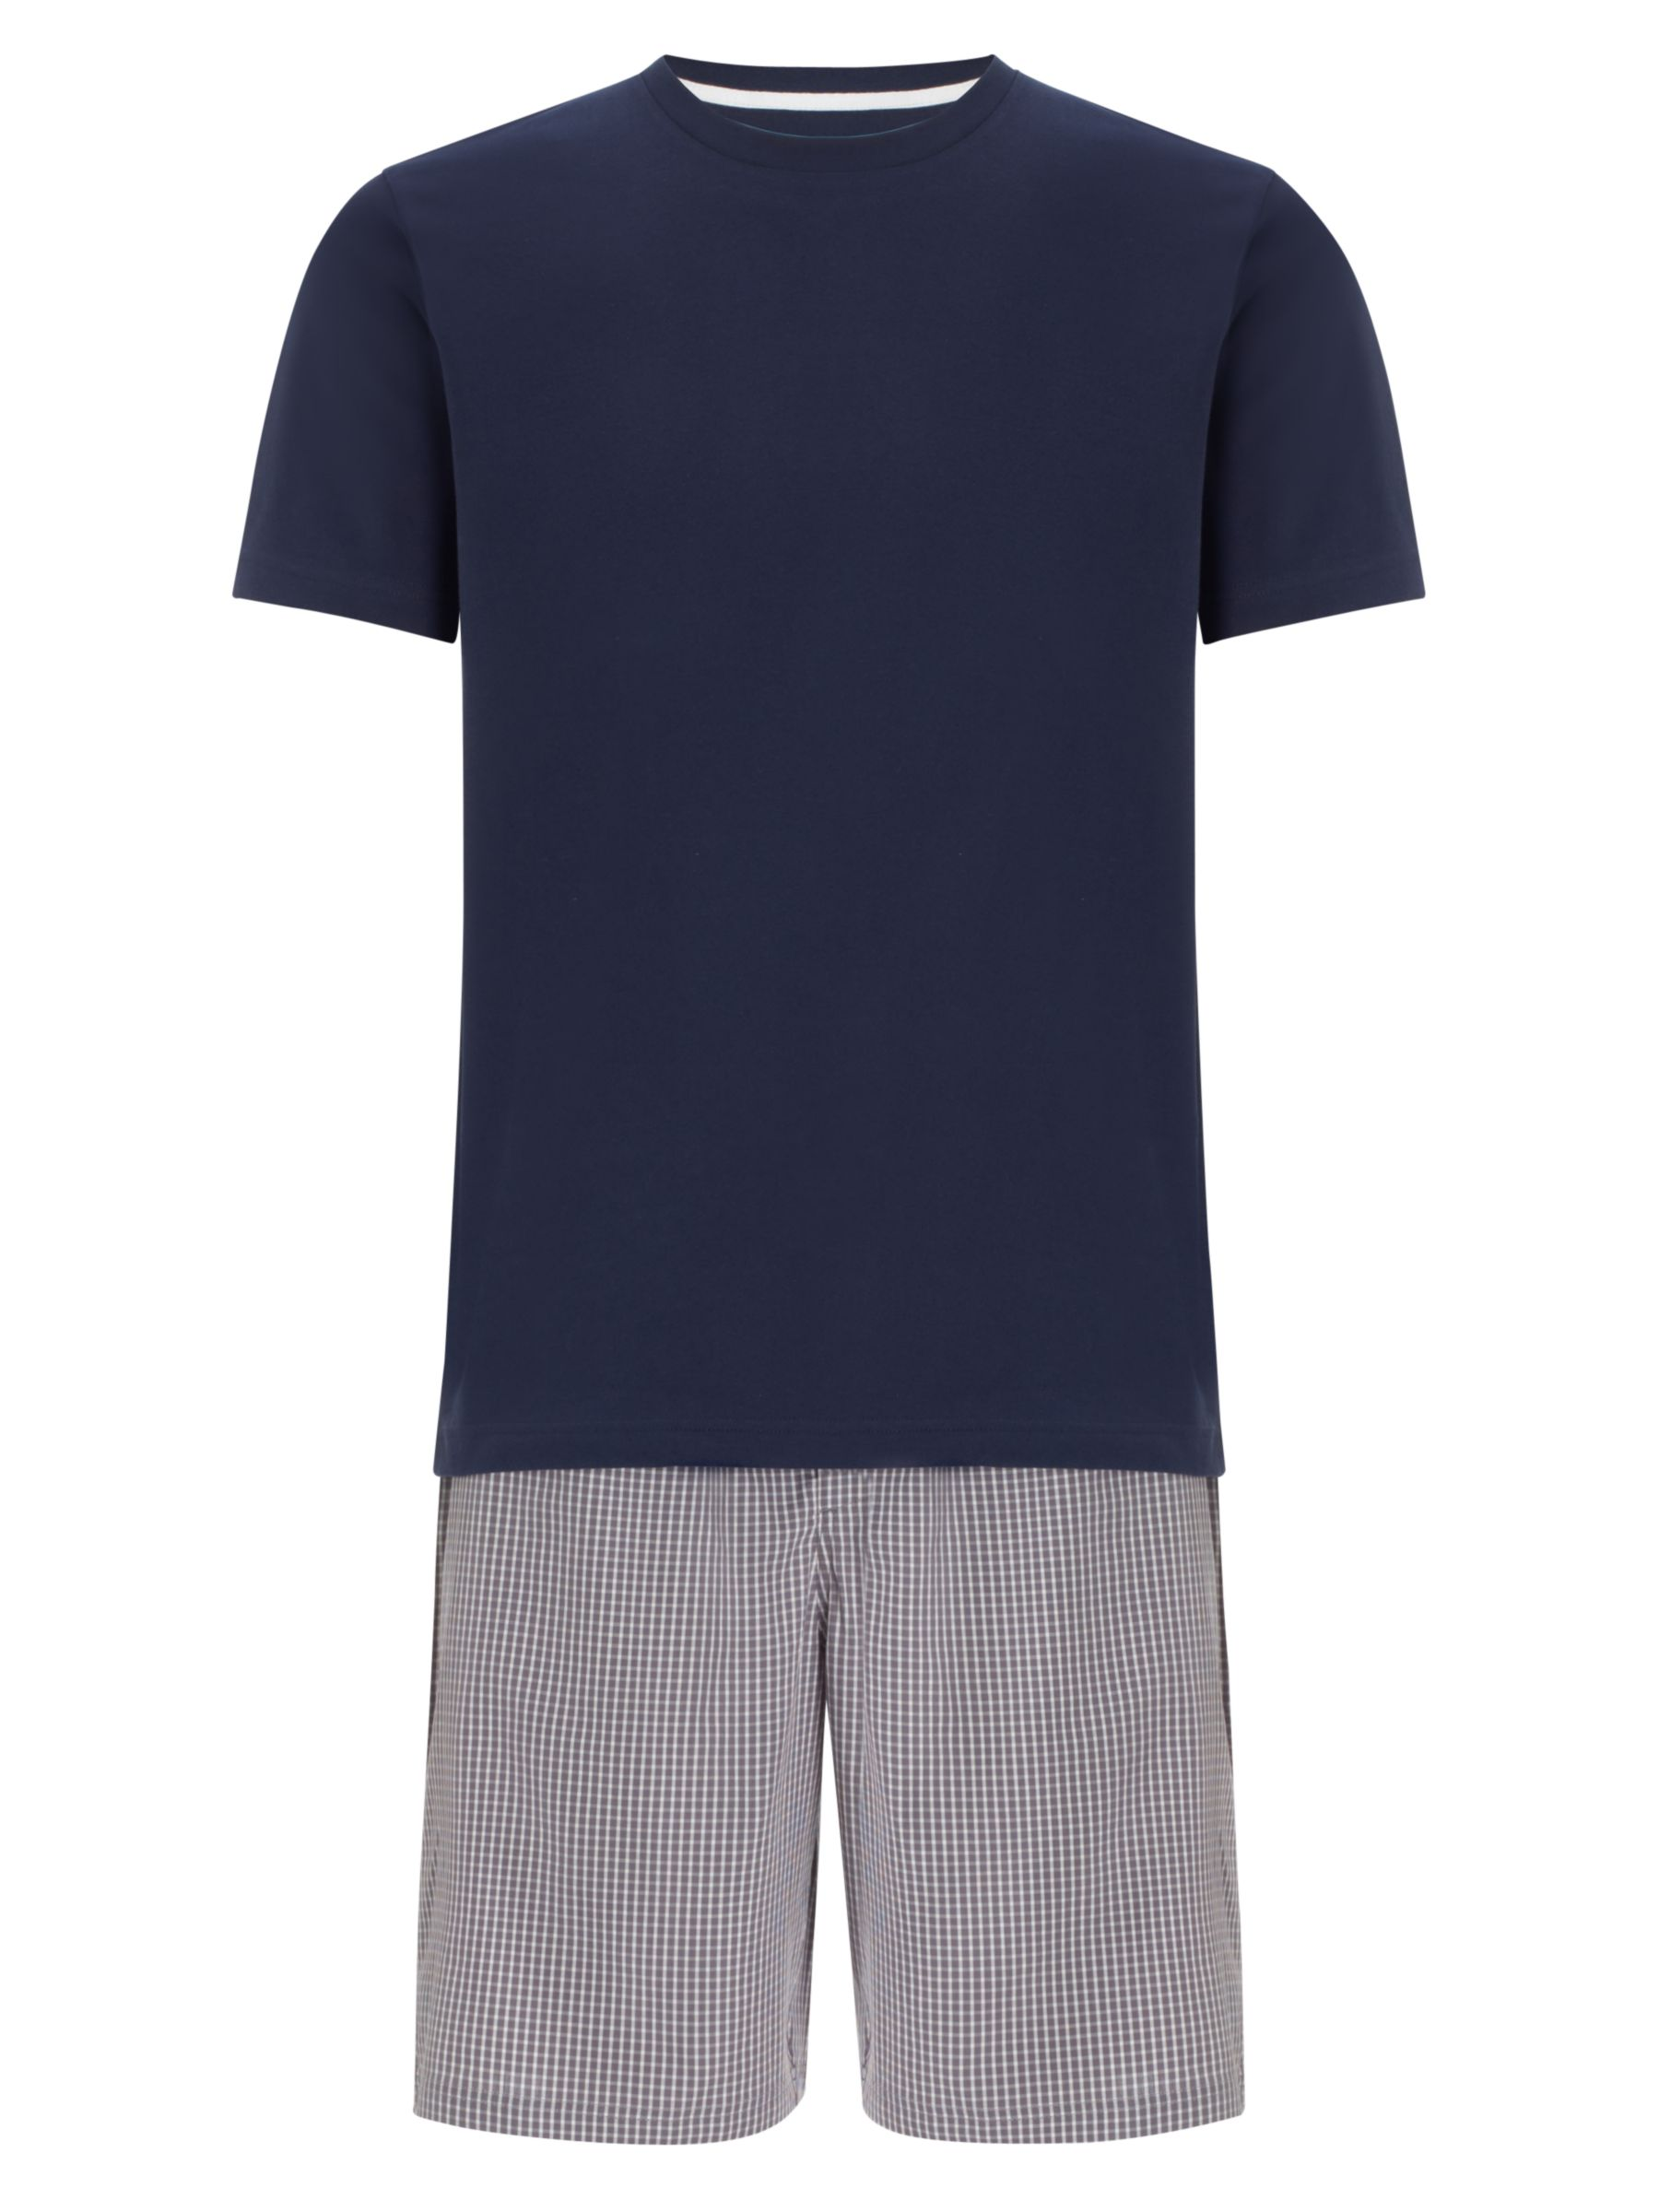 John Lewis Short Sleeve T-Shirt and Gingham Lounge Shorts